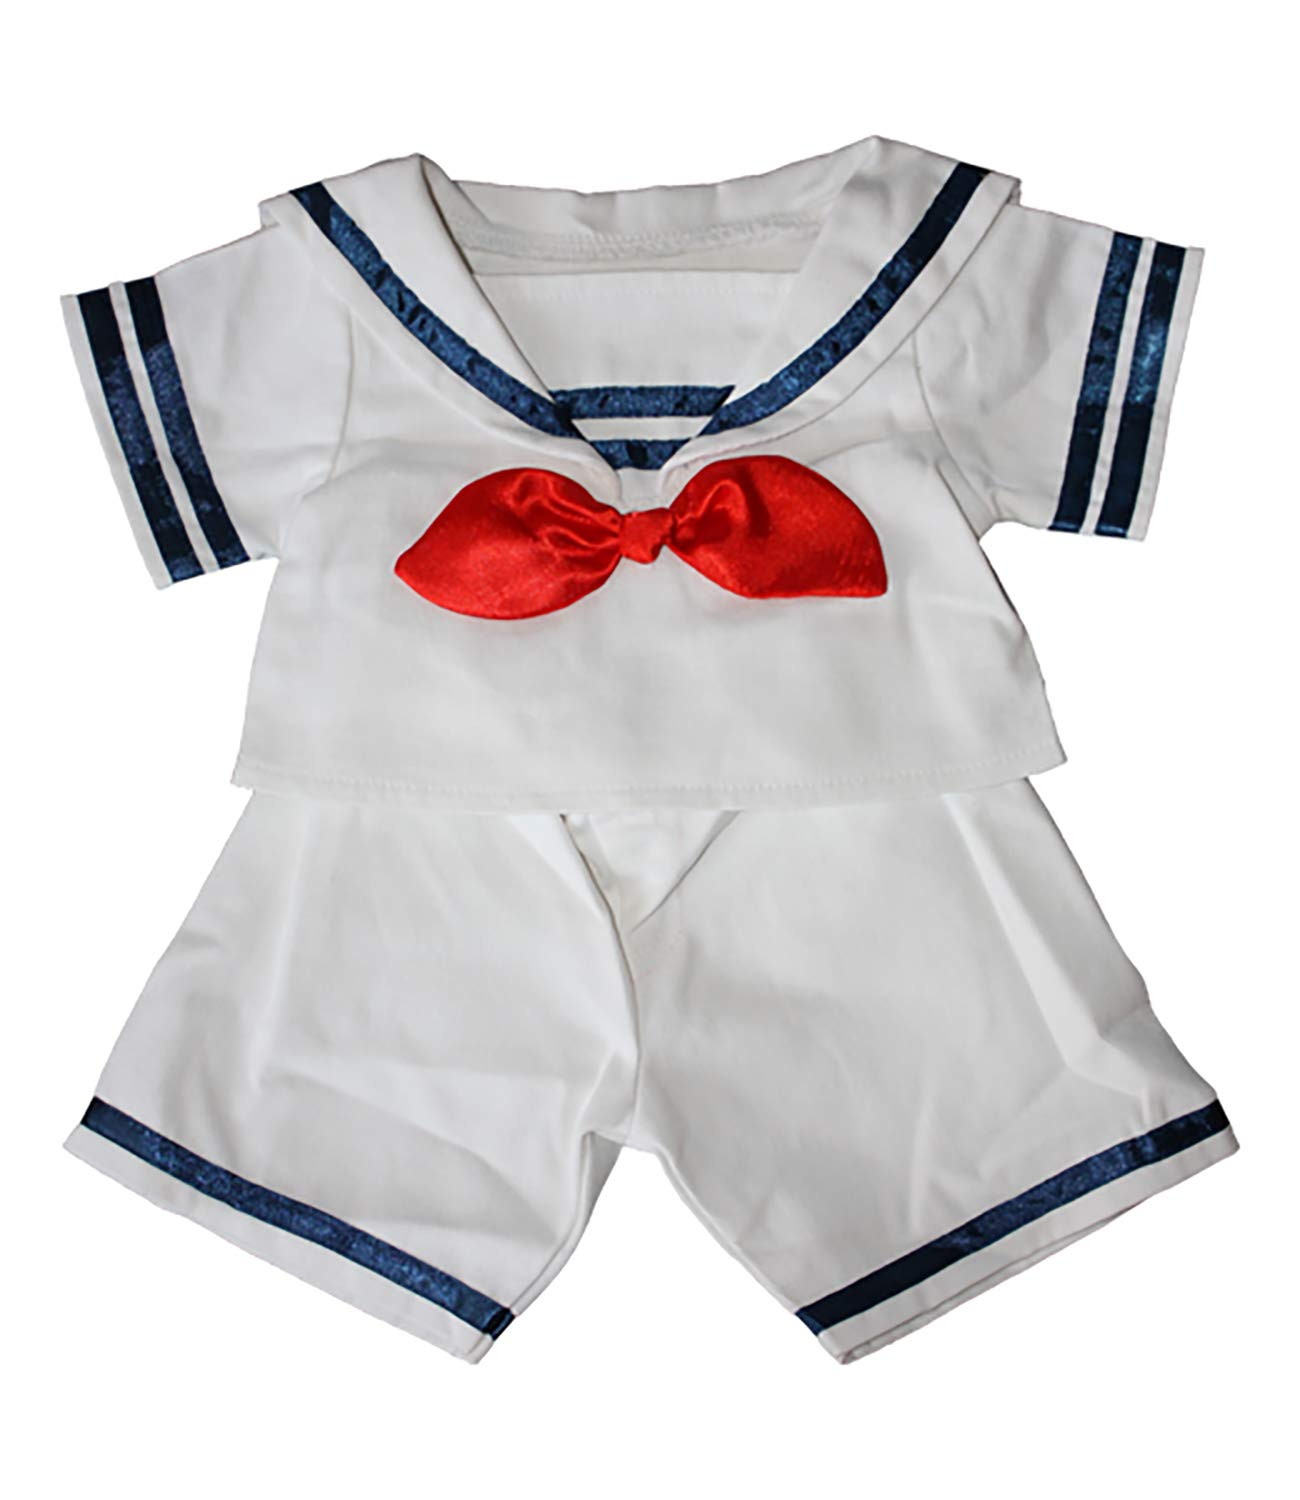 """18/"""" Build-a-bear and Make Your Own Stuffed Ani China Doll Outfit Fits Most 14/"""""""